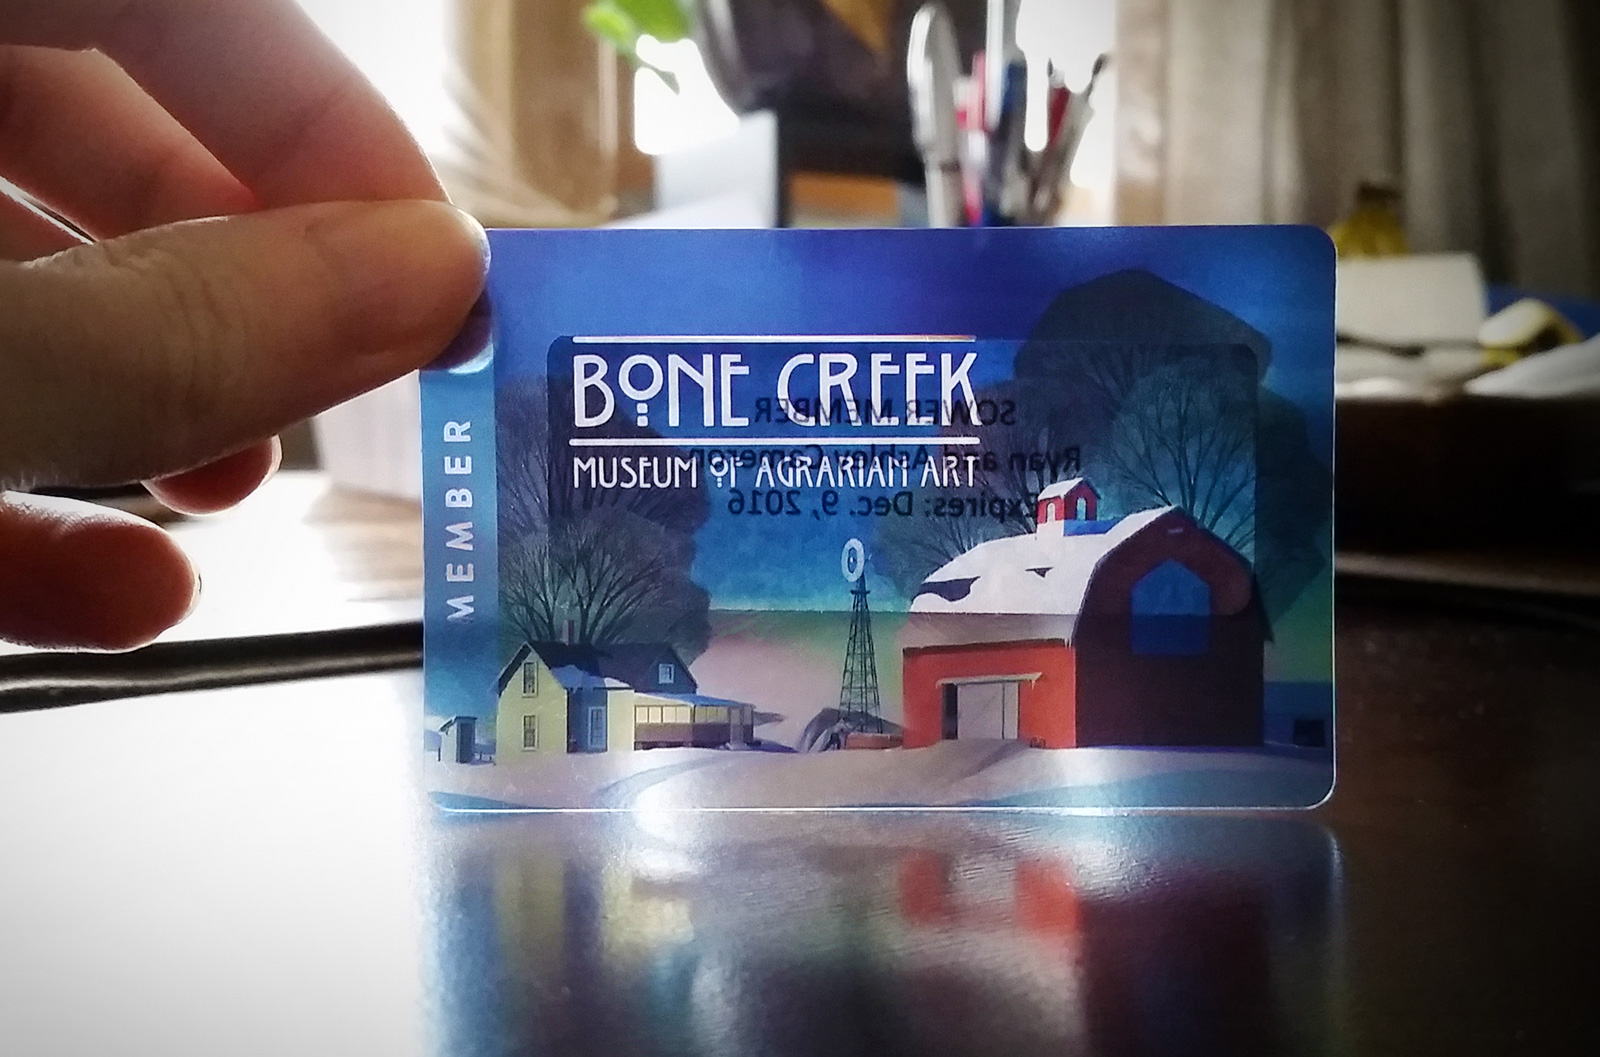 Bone-Creek-Museum-membership-card-in-light